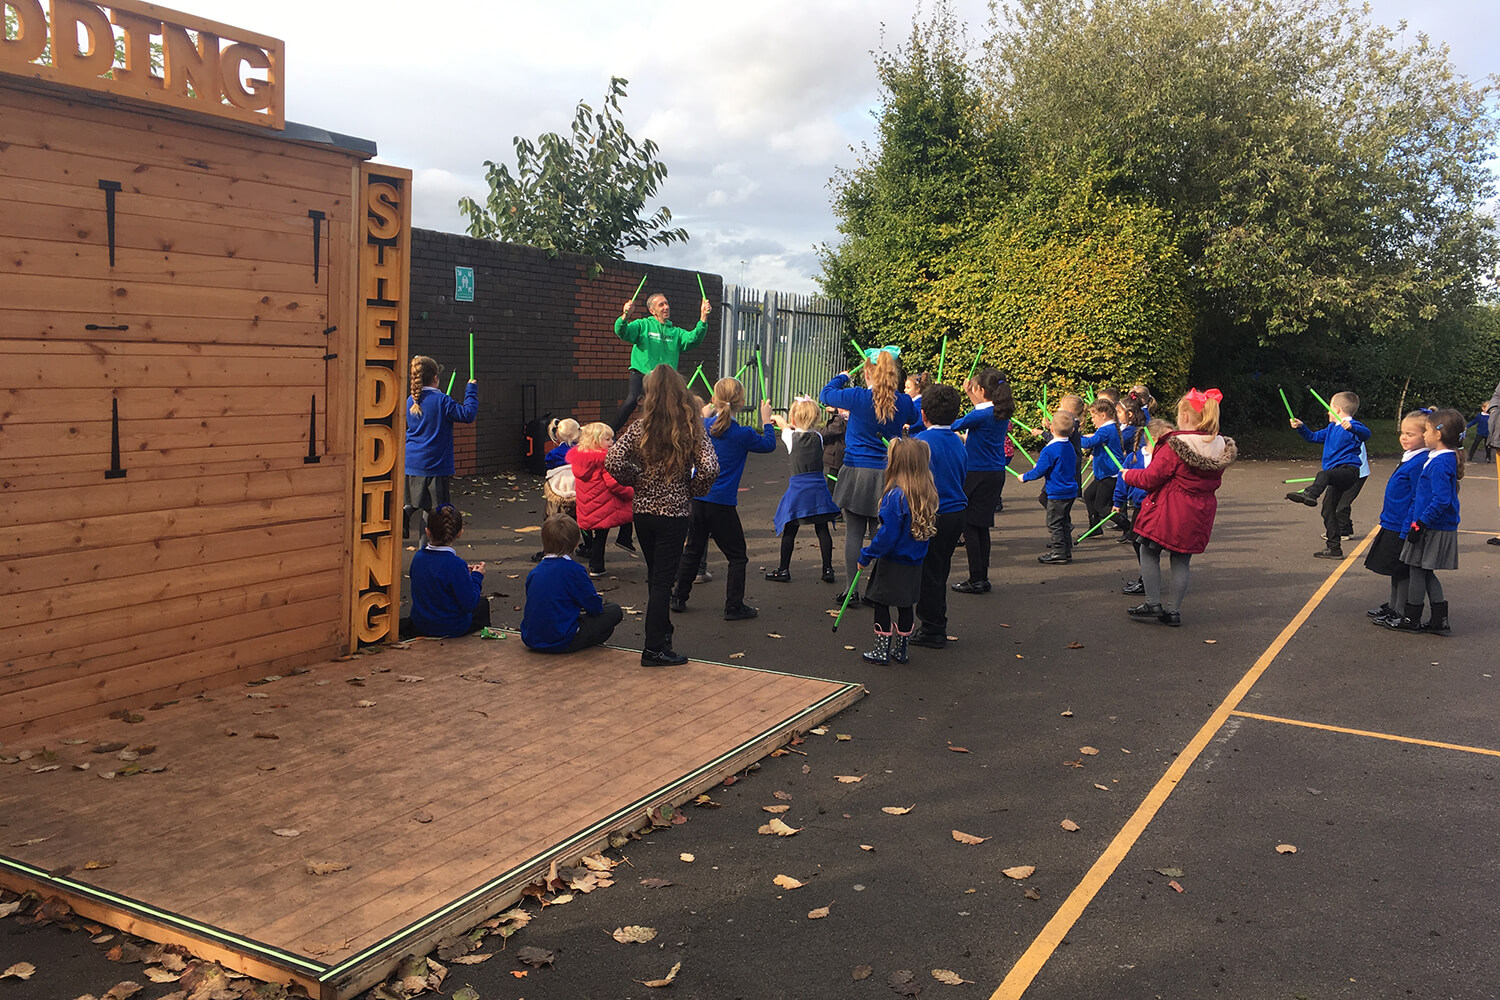 SHED being used as a school activities hub